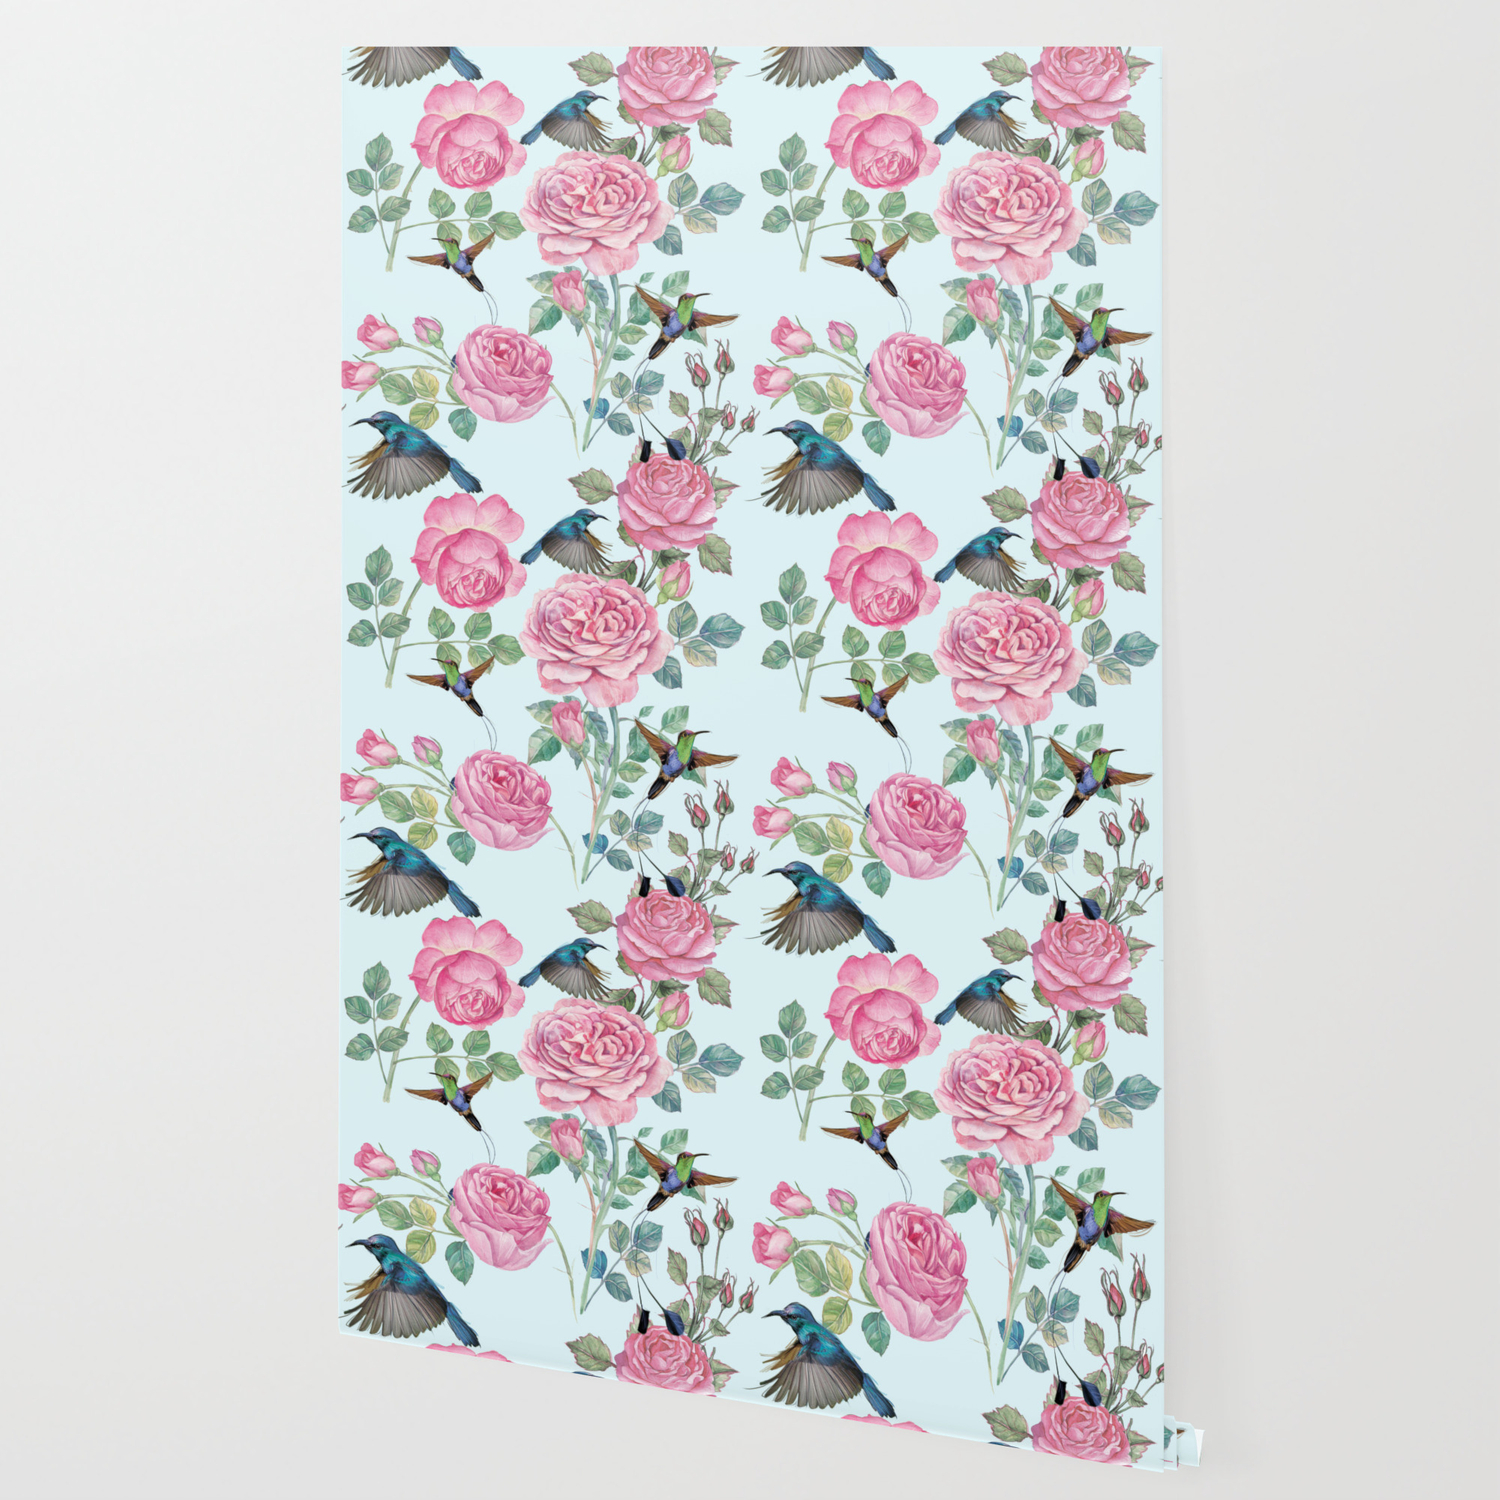 Vintage Watercolor Hummingbird And English Roses Wallpaper By